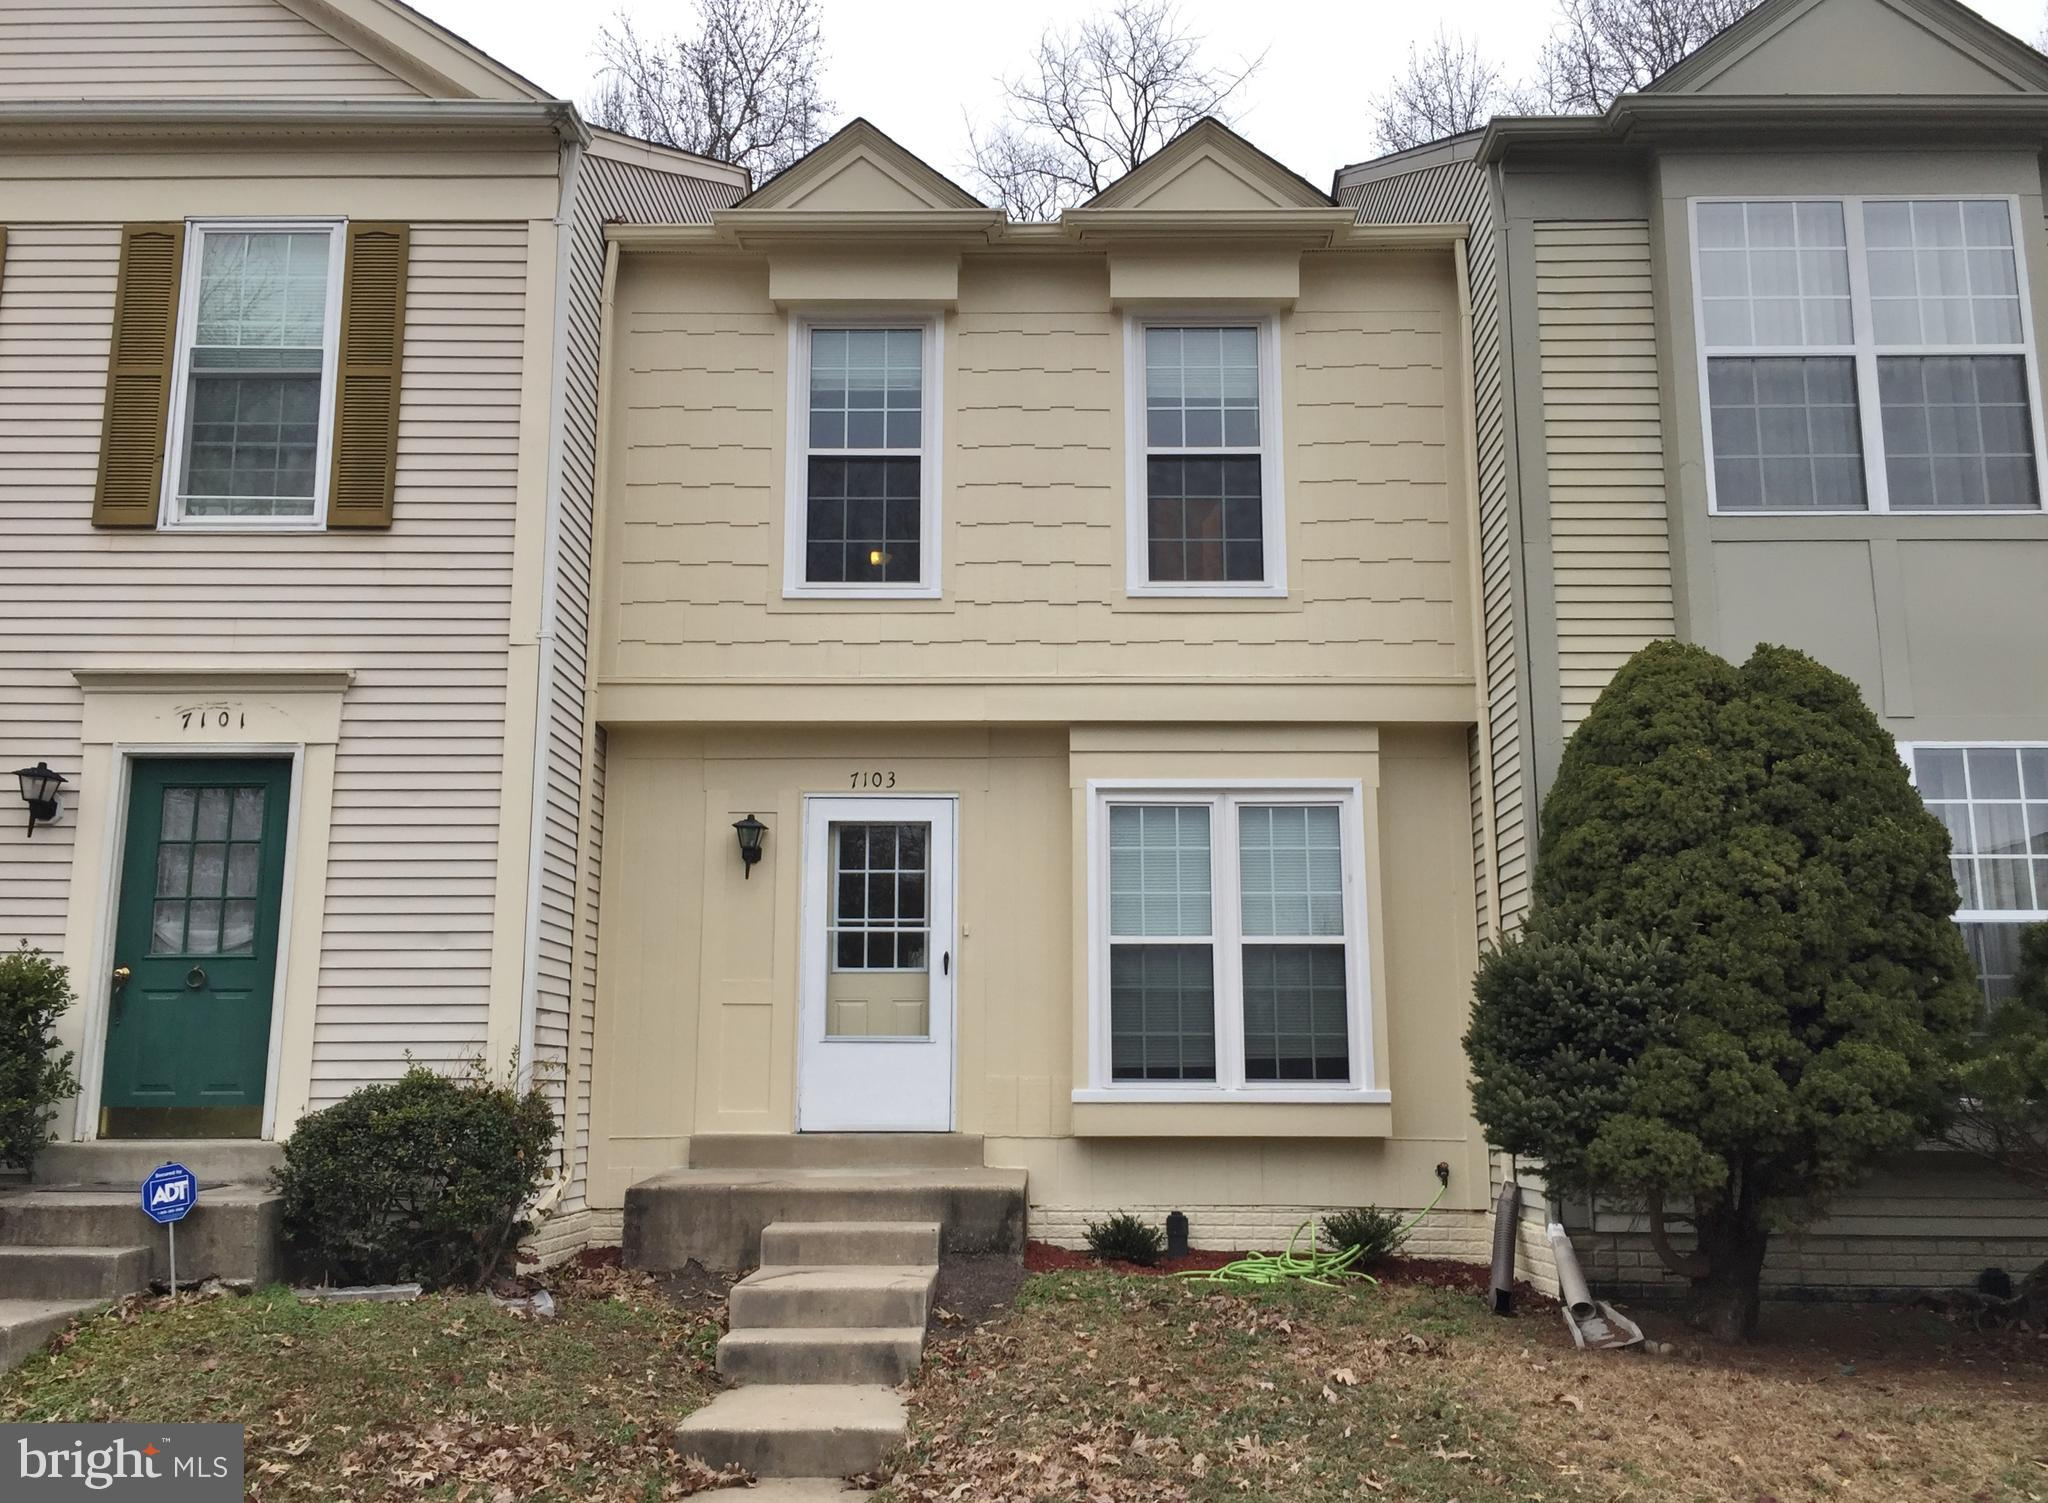 Sellers has remodeled this 3 lvl TH.  Everything is ready for you to move your furniture in!!  Painting has just been completed. Kitchen was completely redone only a year ago.  HVAC is 1 year old.  Windows are 2 years old.  You will love our private fenced in backyard that has a view of trees. We are a heart beat away from Fort Belvoir, Huntington Metro and National Harbor.